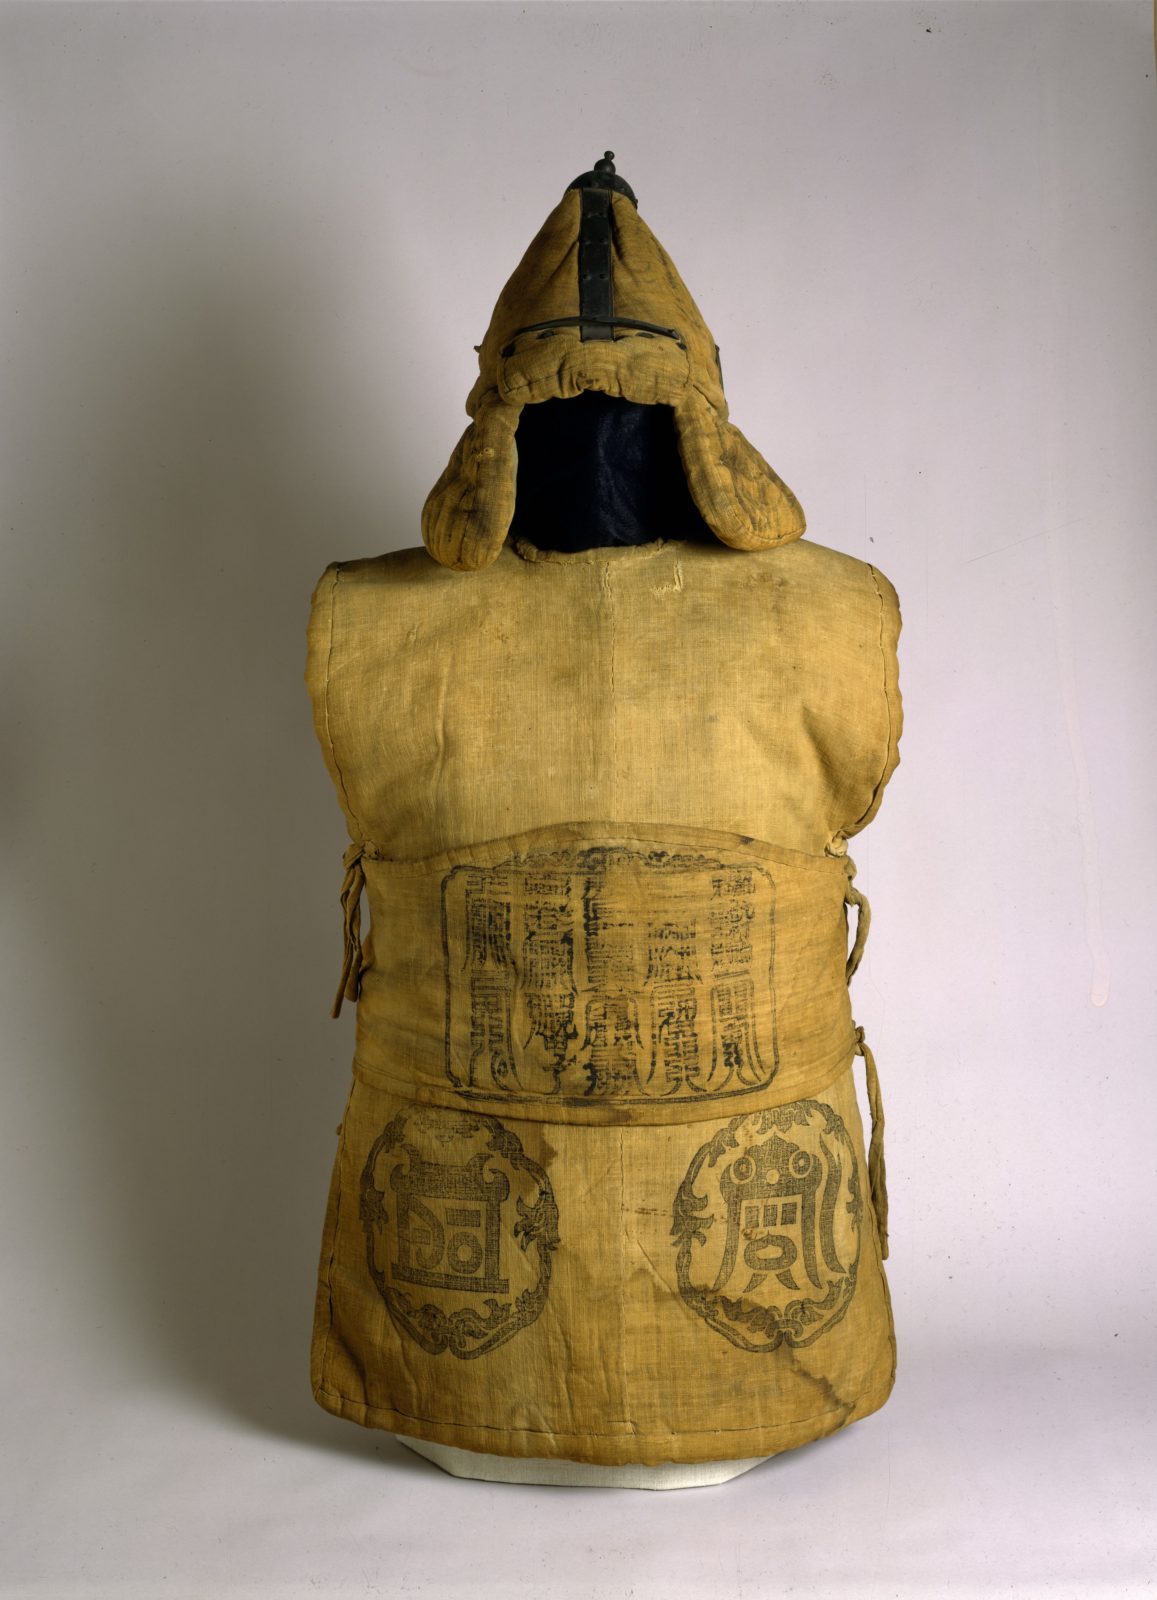 Fabric Armor and Helmet with Buddhist and Taoist symbols